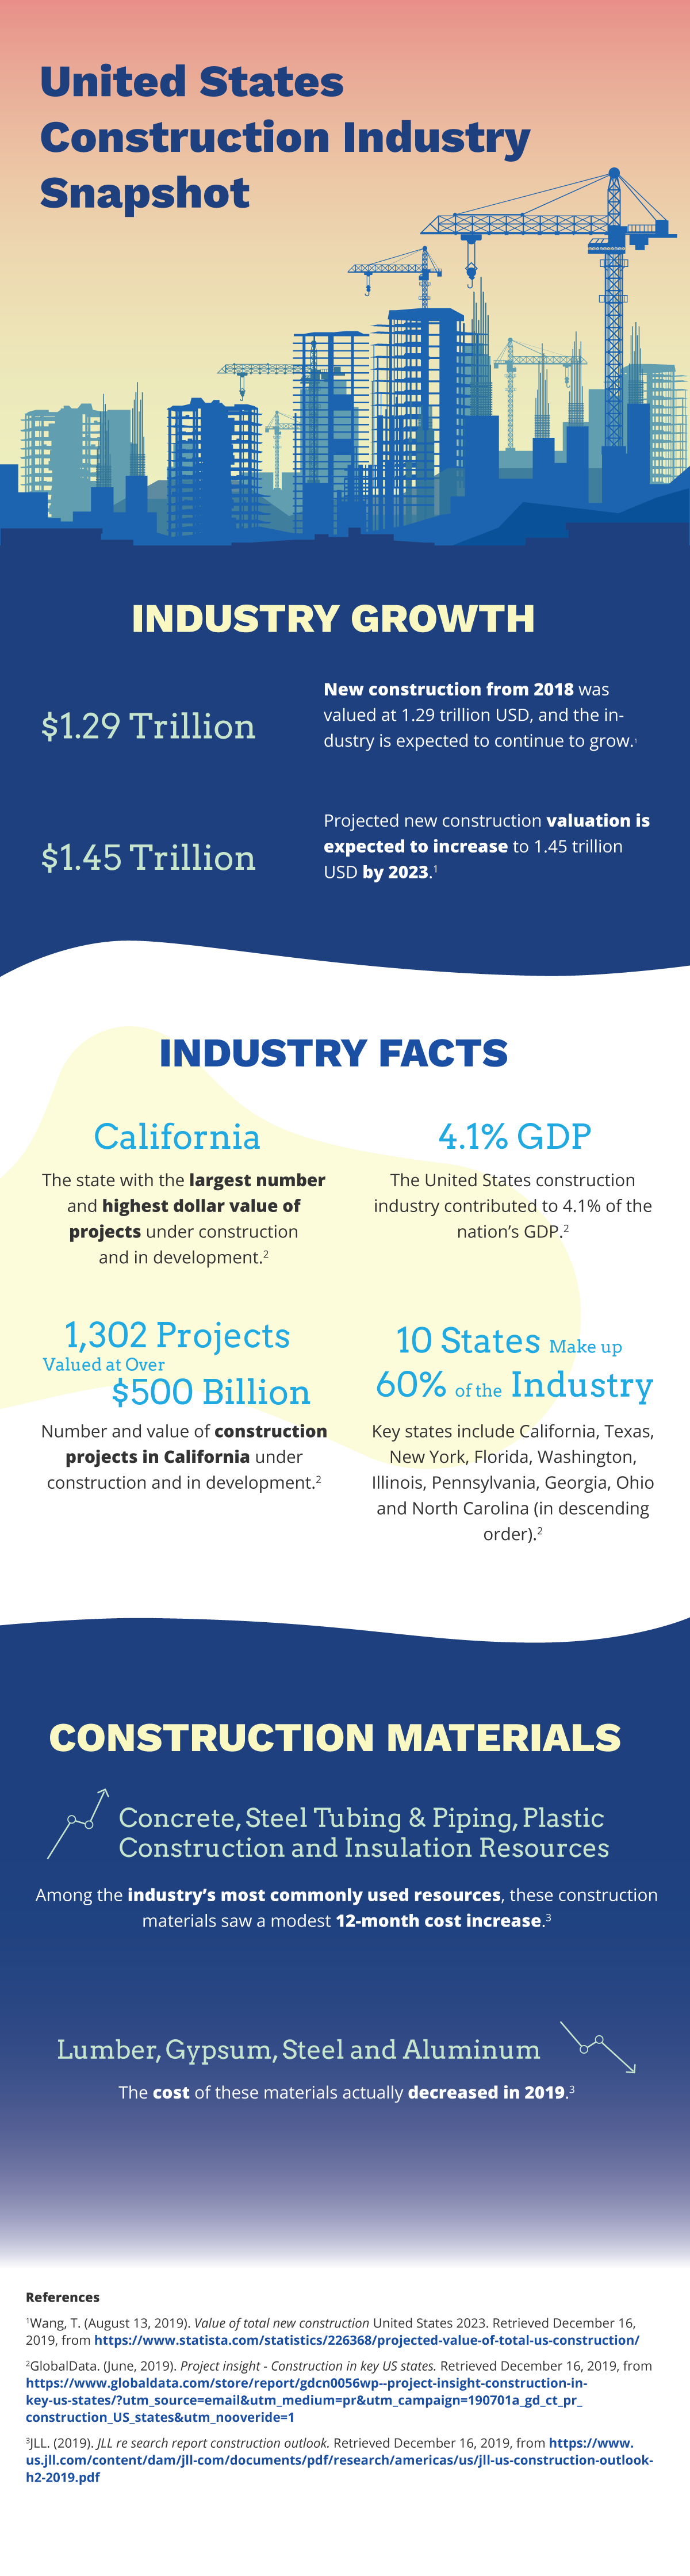 United States Construction Industry Snapshot Infographic